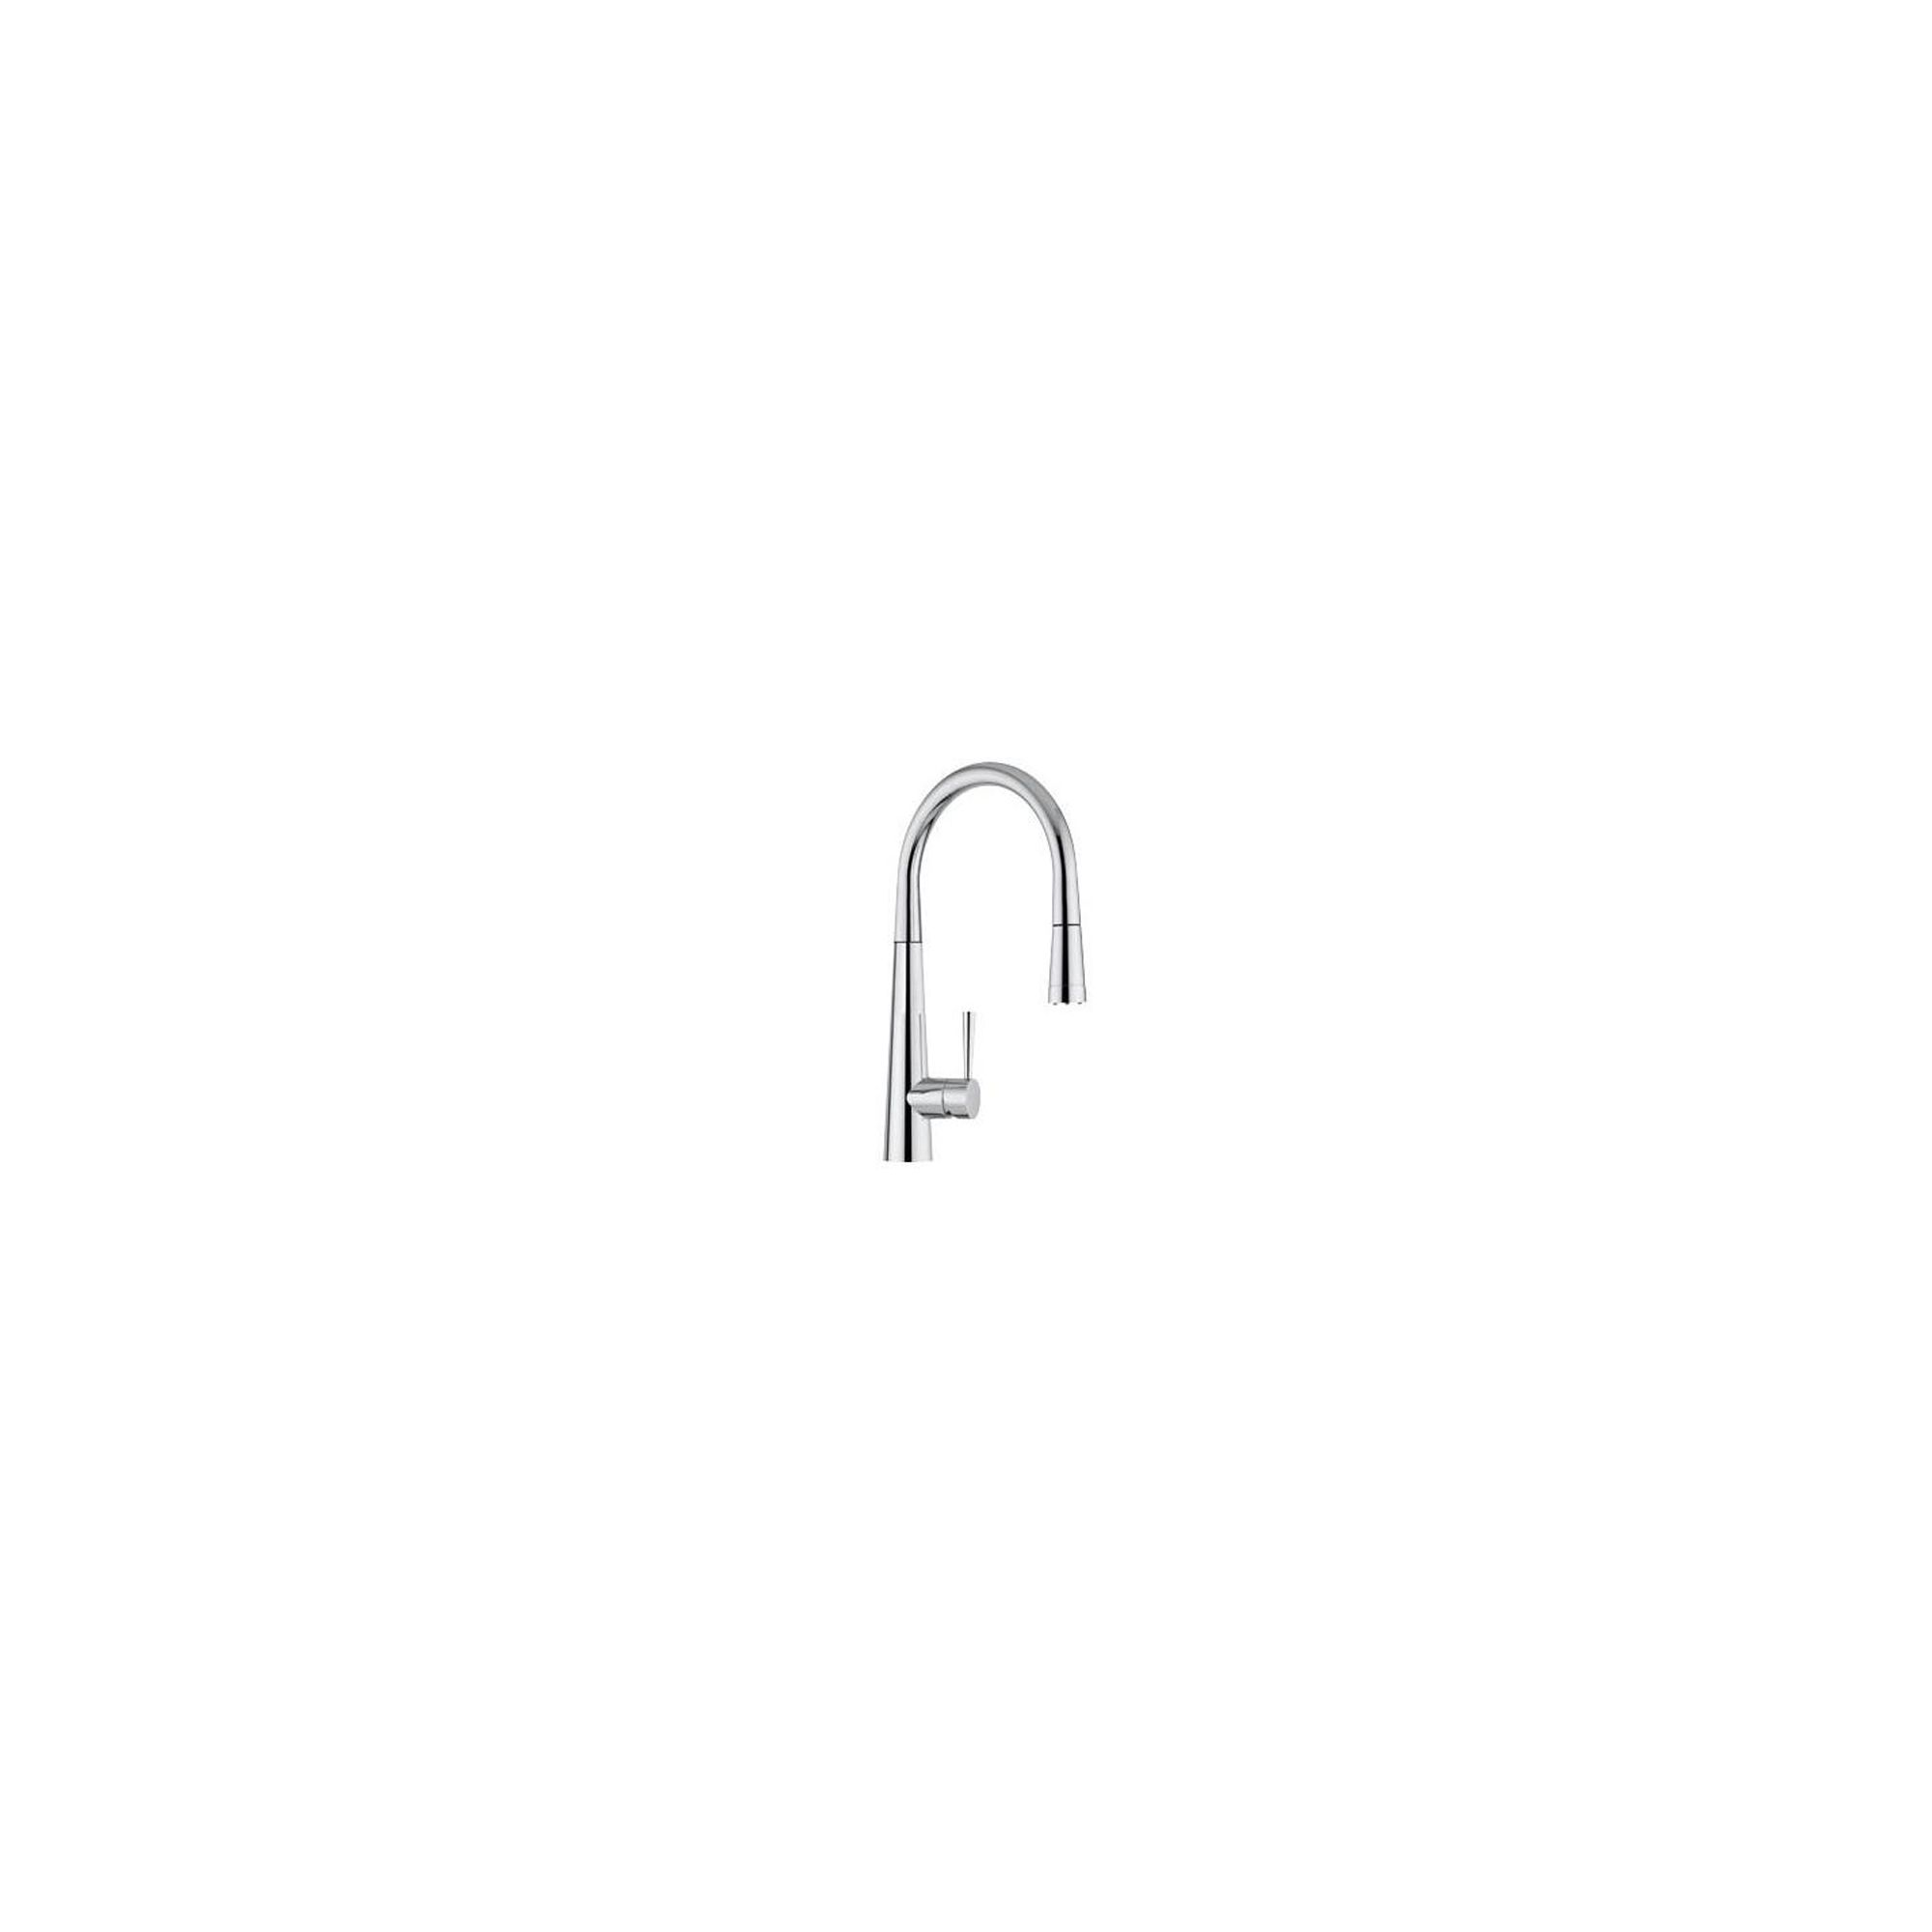 Franke Rolux LED Single Handle Kitchen Sink Mixer Tap, Chrome at Tesco Direct